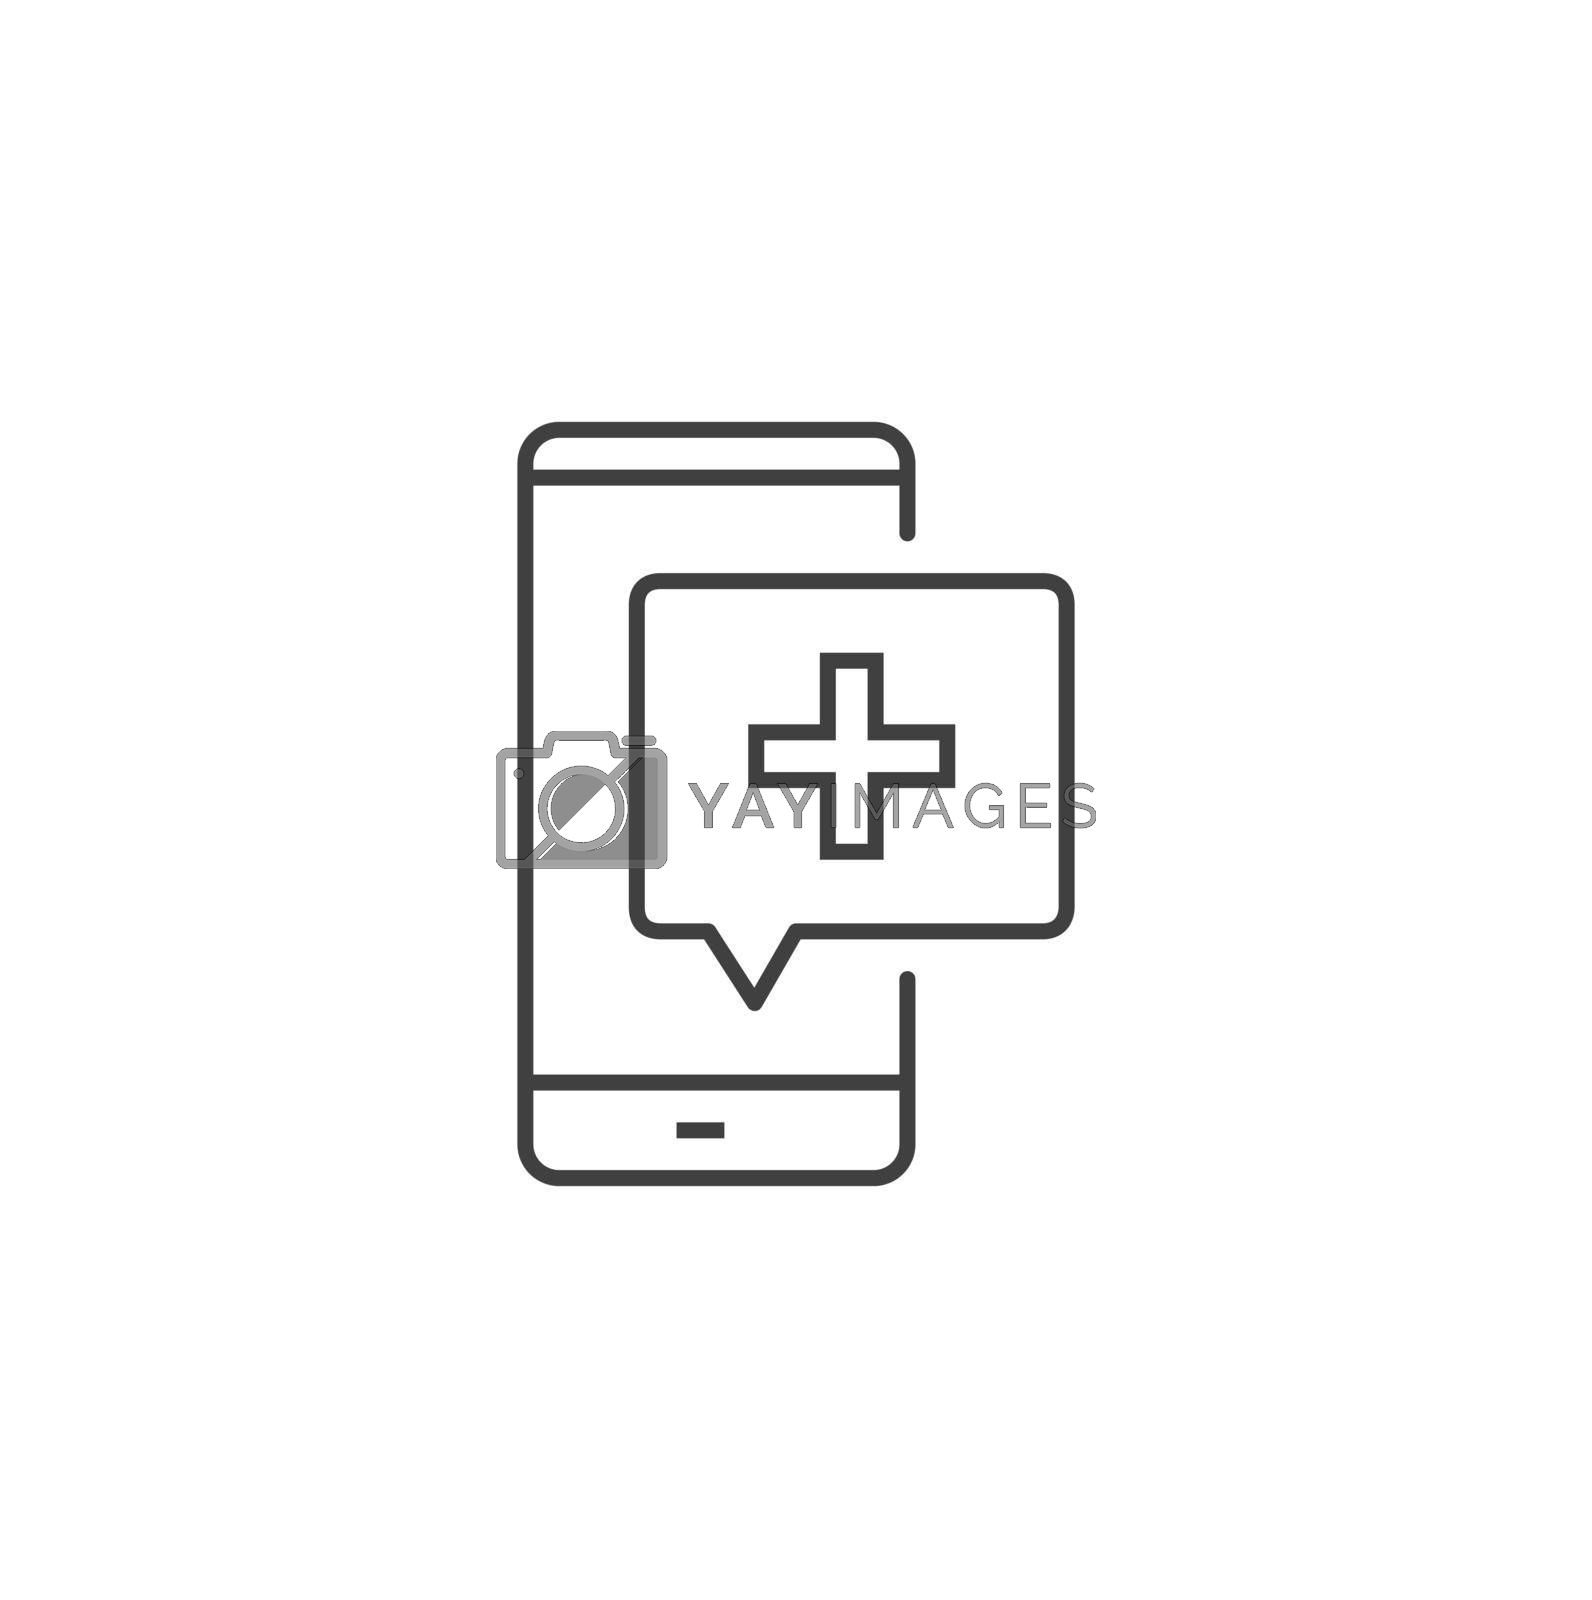 Telemedicine Thin Line Related Vector Icon. Flat Icon Isolated on the Black Background. Editable Stroke EPS file. Vector illustration. Online medical support. Medical Consultation Message.